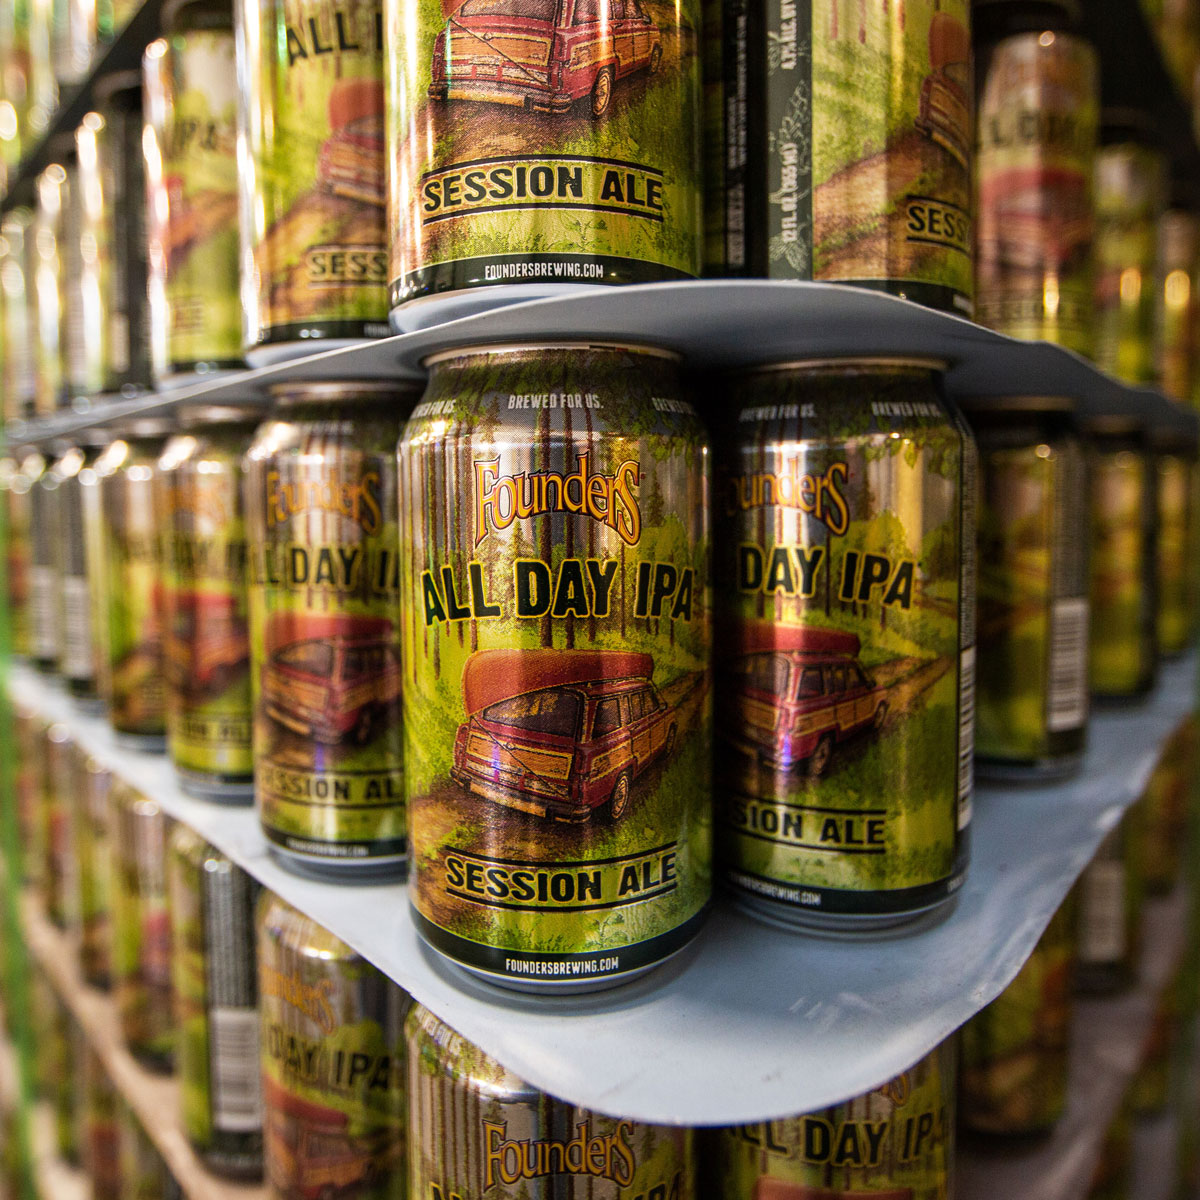 Cans of Founders All Day IPA